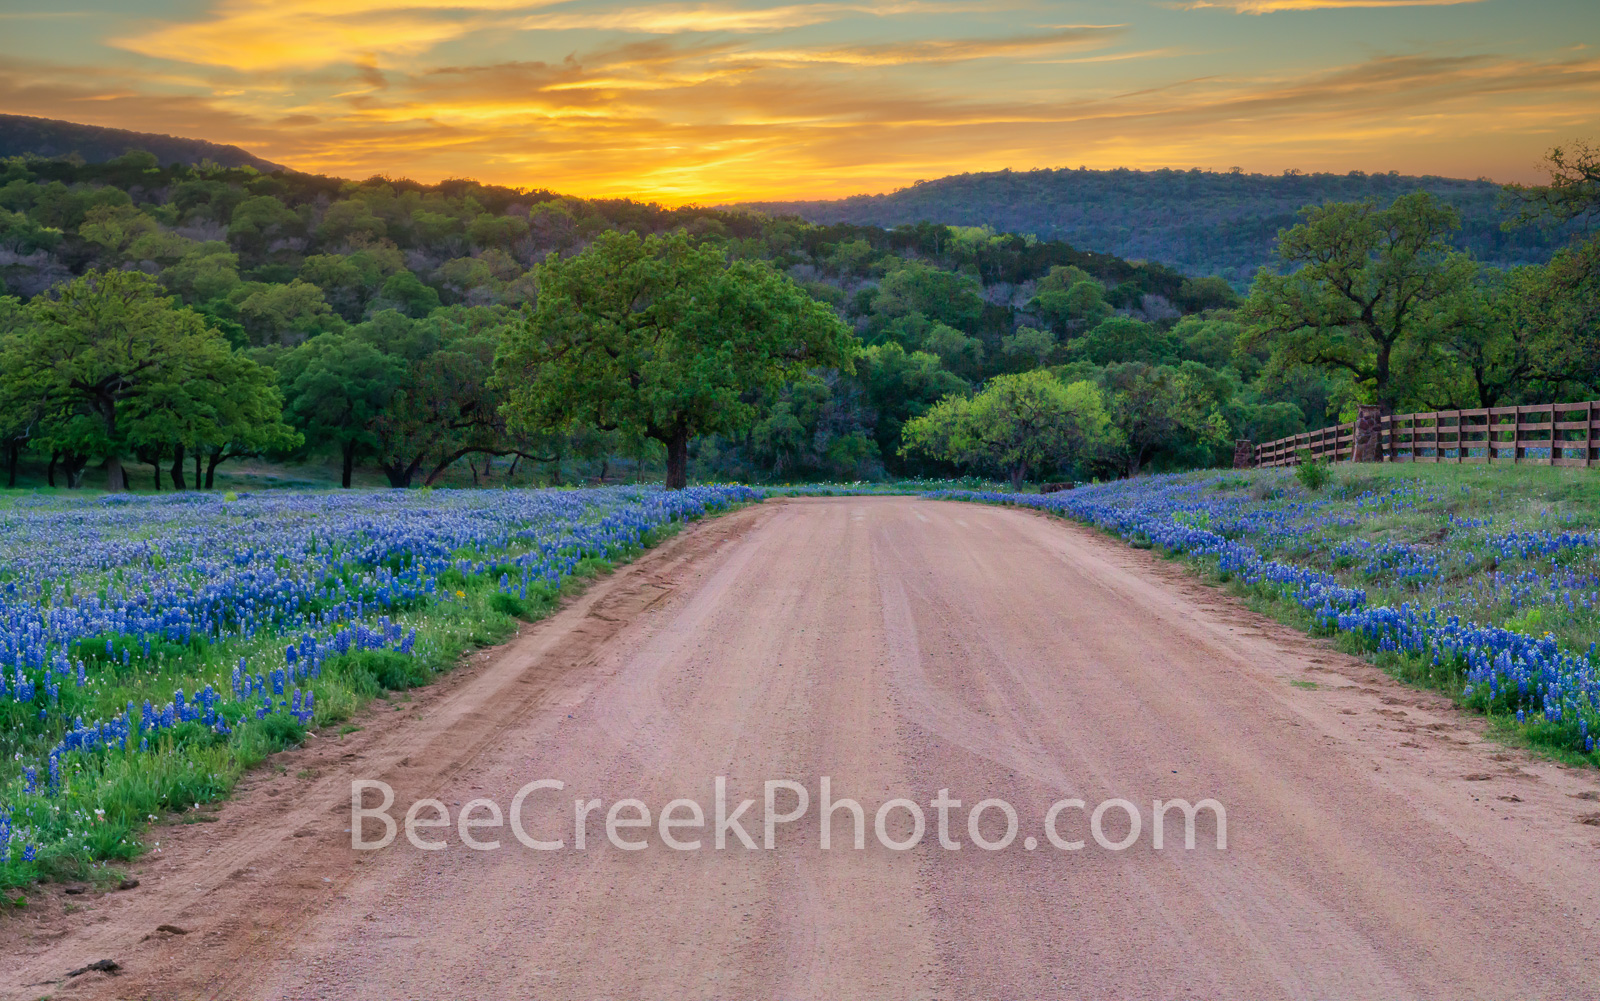 bluebonnets, texas hill country, sunset, dirt road, texas, scenery, texas landscape, hill country, texas bluebonnet, hill country landscape, spring, bluebonnet road, wildflowers, texas wildflowers, im, photo